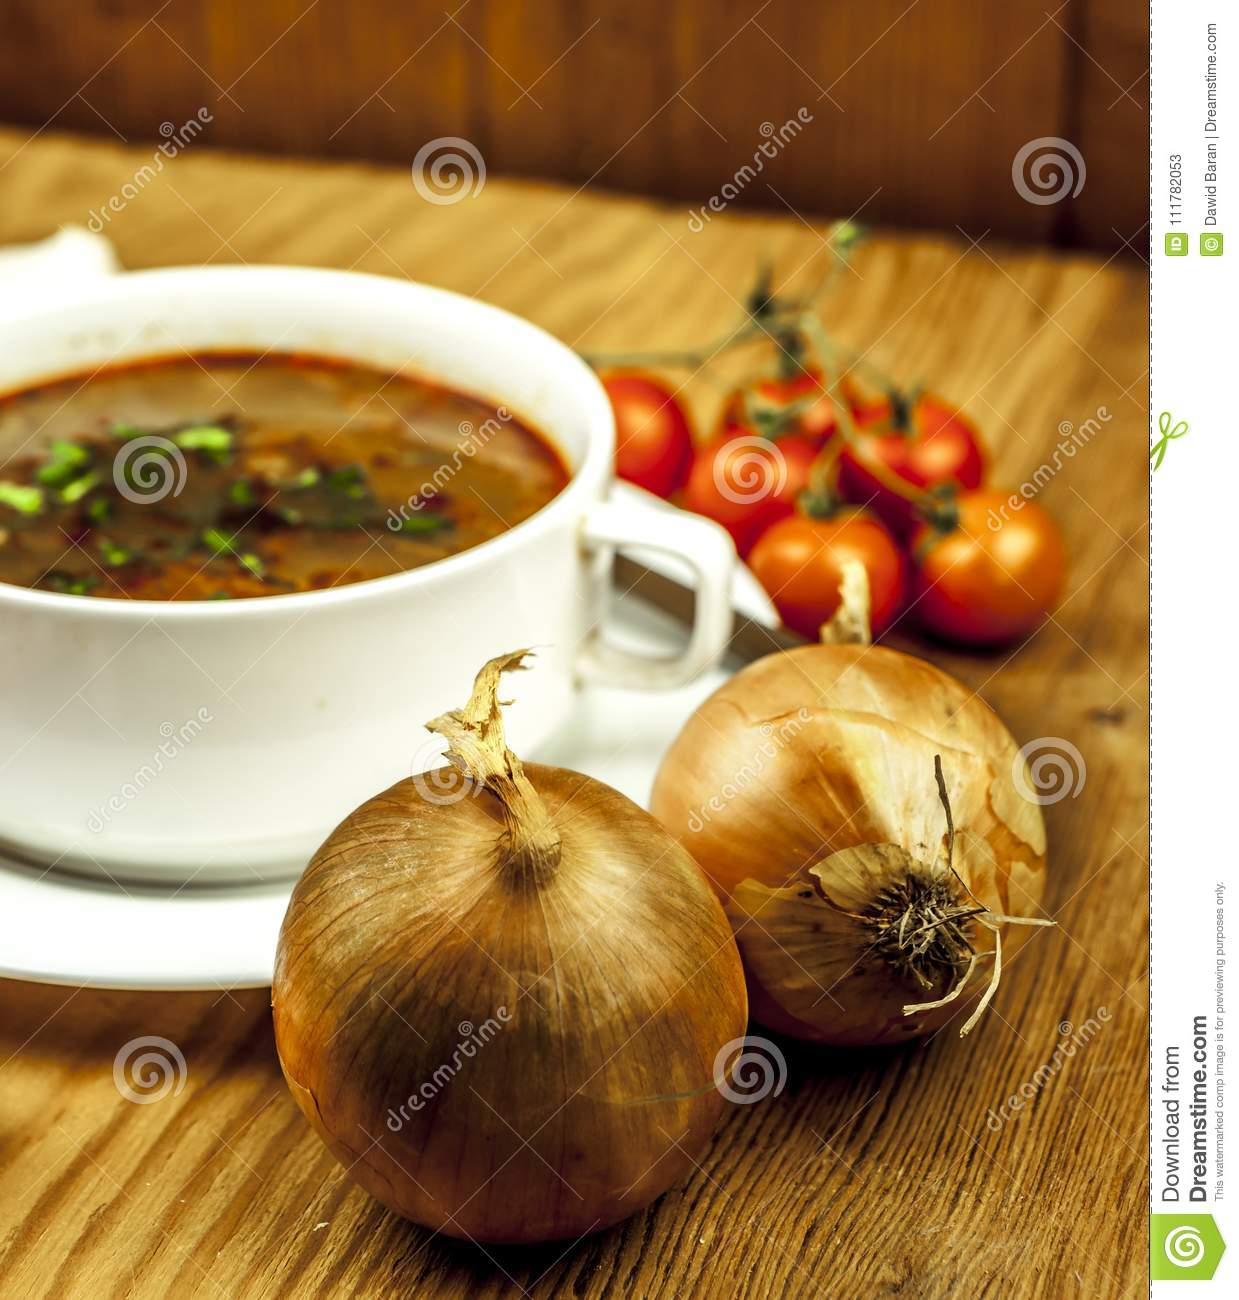 Cup of onion soup with two onions